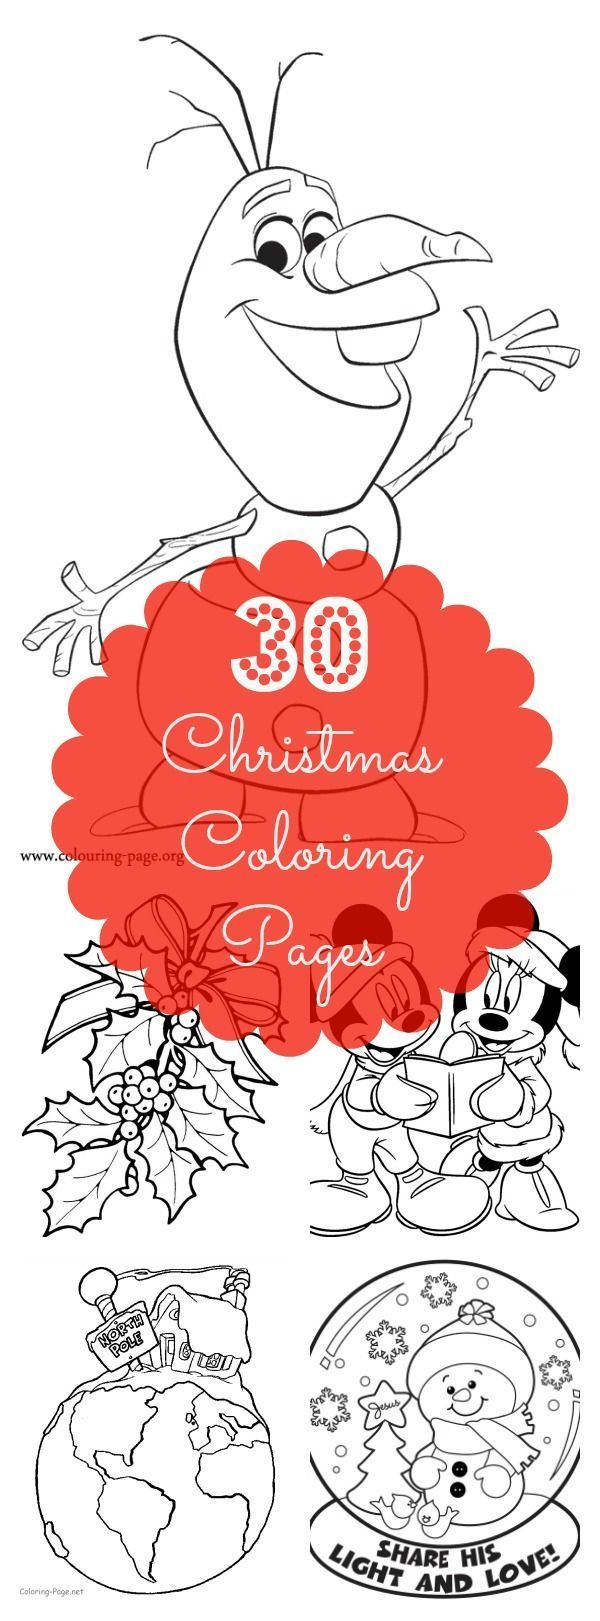 30 Christmas Coloring Pages for Your Kids or Class!... - http://designkids.info/30-christmas-coloring-pages-for-your-kids-or-class.html 30 Christmas Coloring Pages for Your Kids or Class! #designkids #coloringpages #kidsdesign #kids #design #coloring #page #room #kidsroom